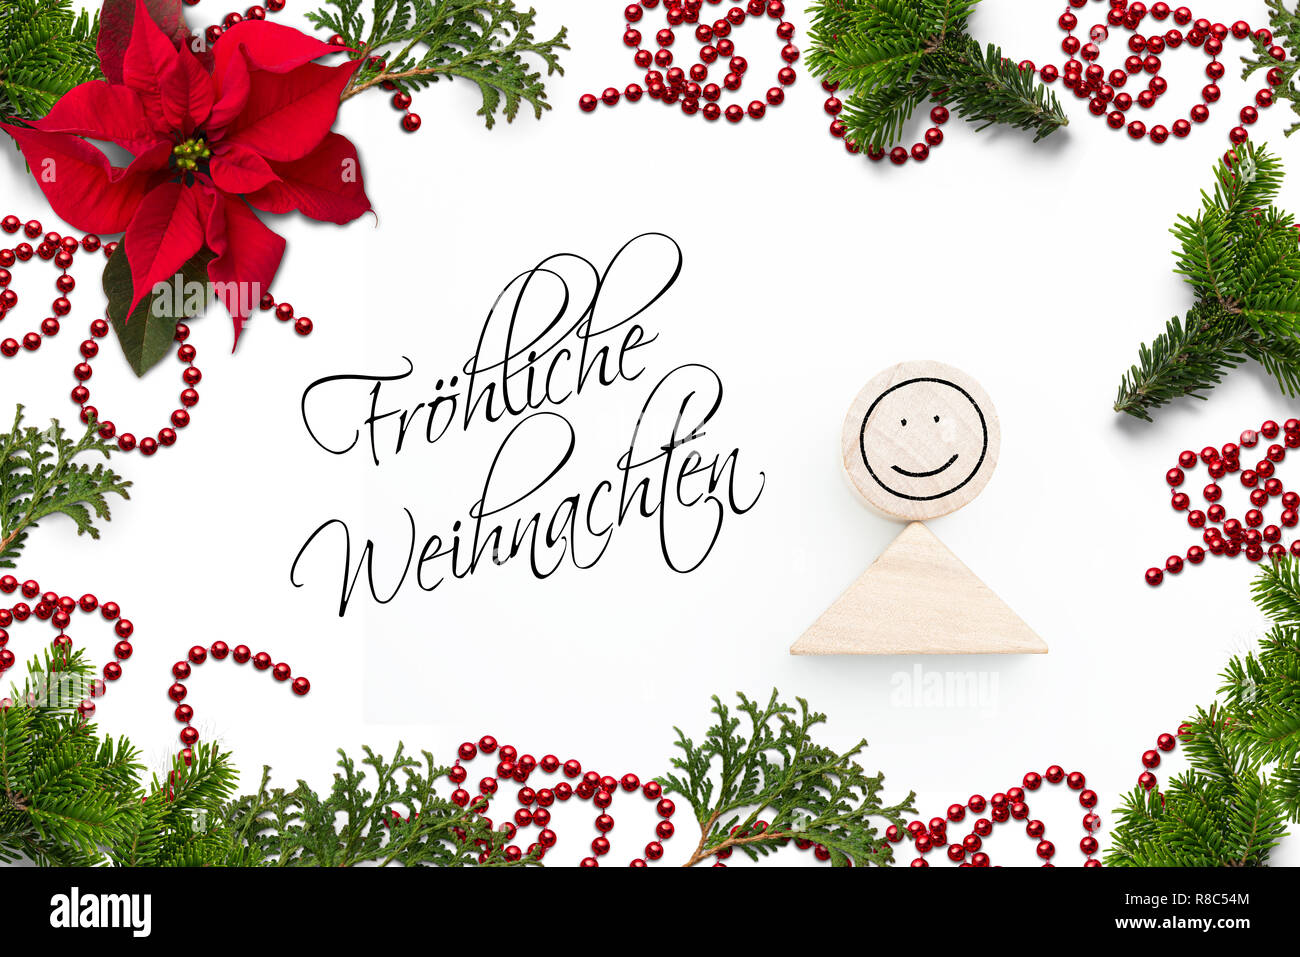 Christmas decoration and the German message for 'Merry Christmas!' on white background - Stock Image